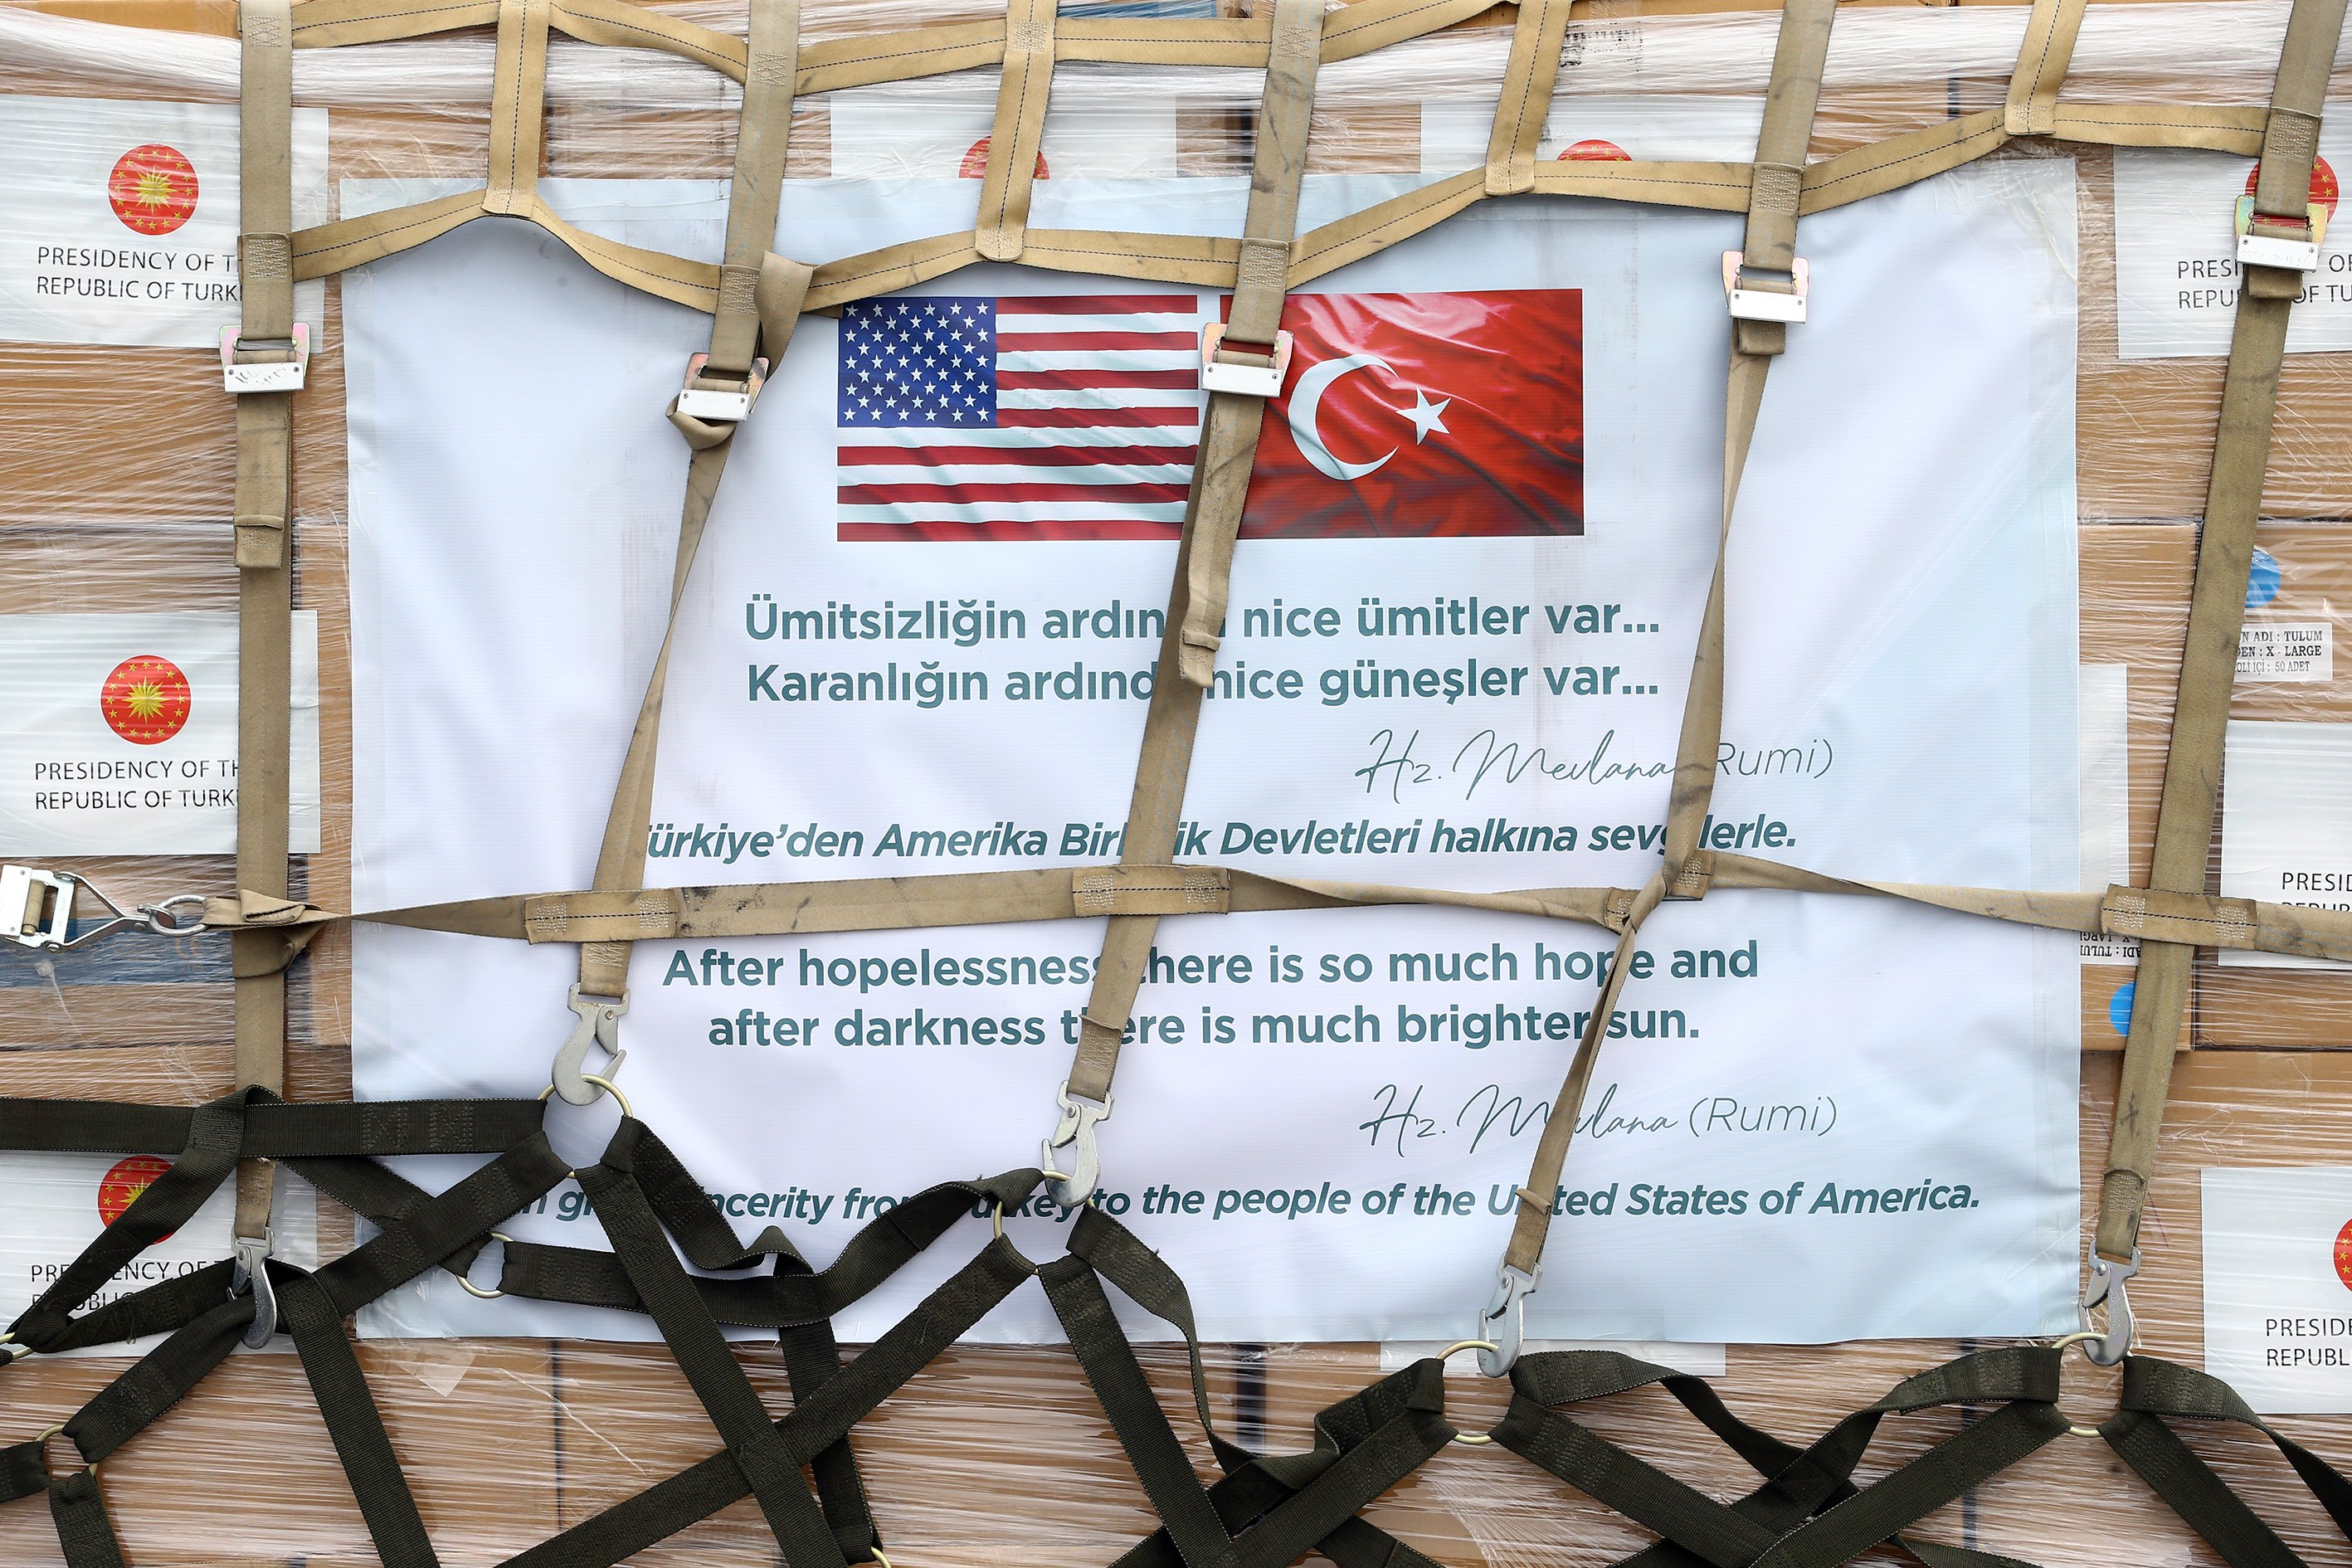 A second Turkish military plane took off from an air base near Ankara on Thursday carrying more medical aid to the U.S. which has been hit hard by the pandemic, April 30, 2020. (AA)